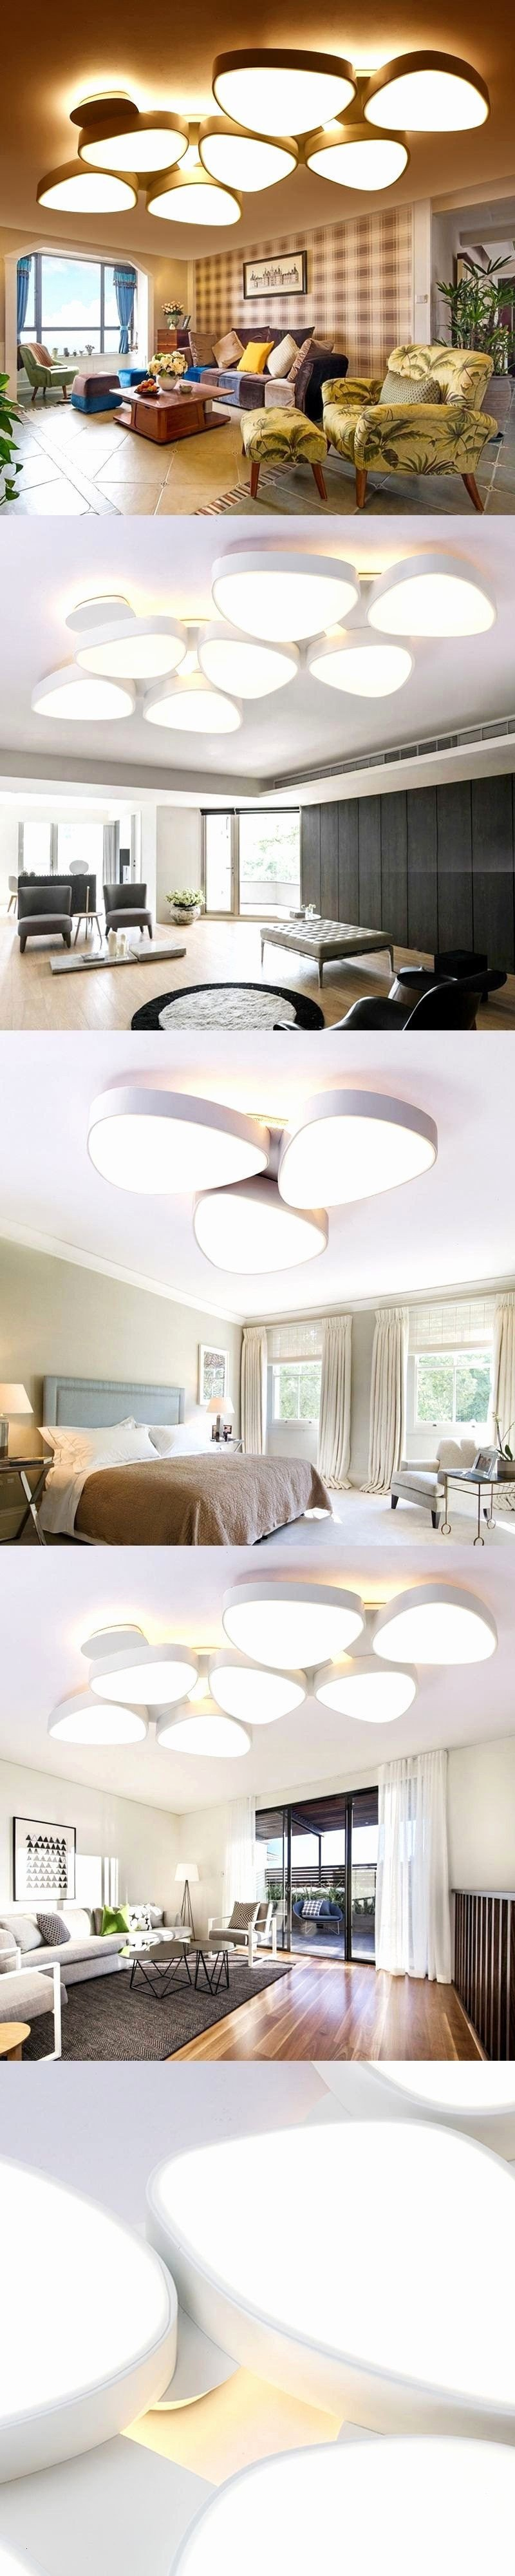 Chandelier Light for Bedroom Inspirational Flush Mount Chandelier Elegant Pendant Light Revit